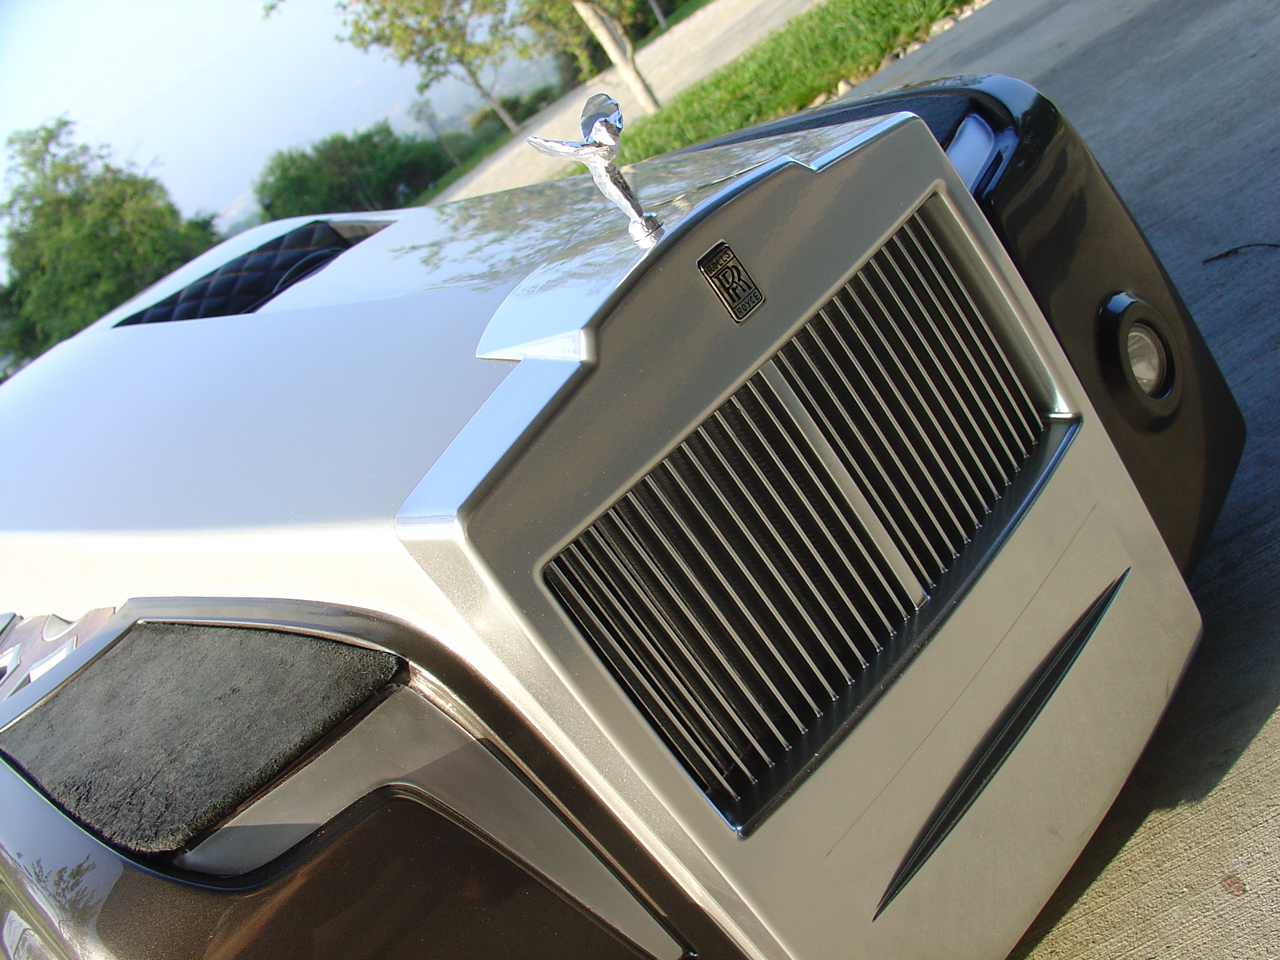 Rolls Royce Apparition Concept Is Eye Catching Autoevolution